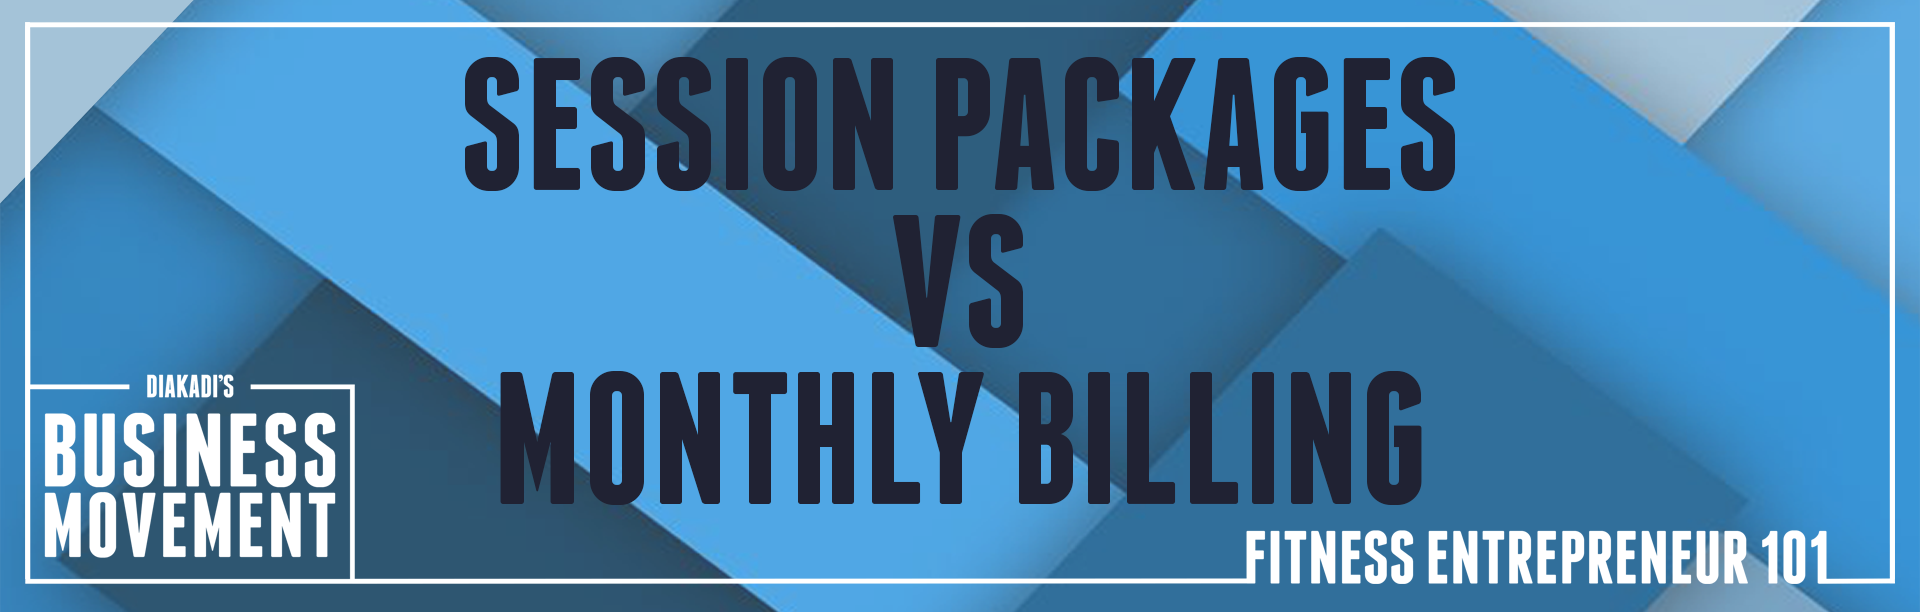 session packages vs monthly billing.png